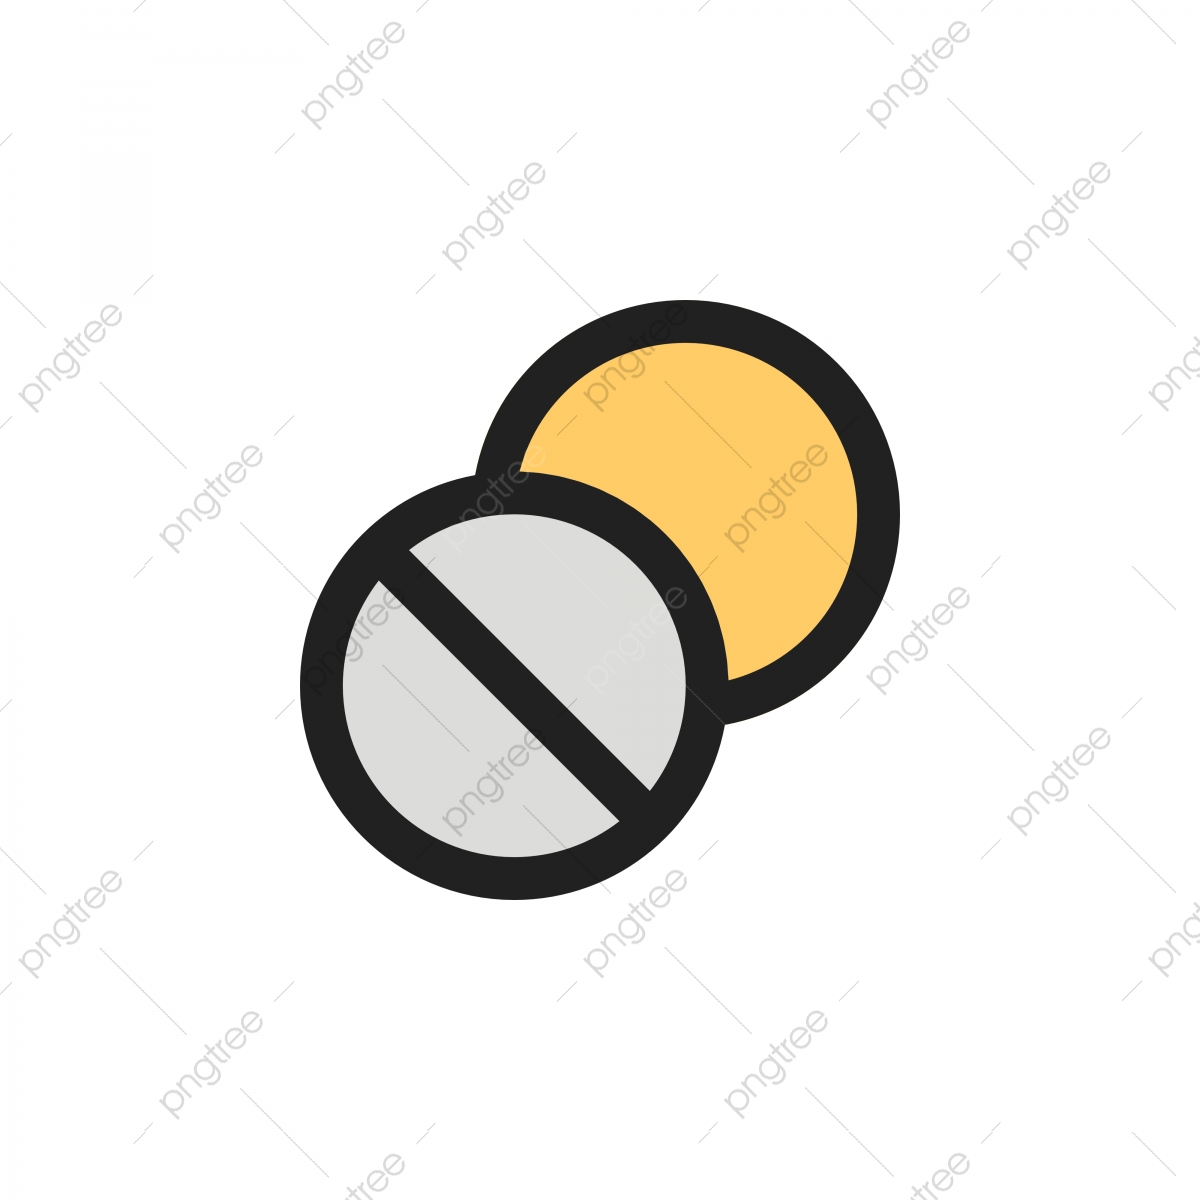 drug icon vector illustration in filled style for any purpose style icons in icons purpose icons png and vector with transparent background for free download https pngtree com freepng drug icon vector illustration in filled style for any purpose 4253364 html